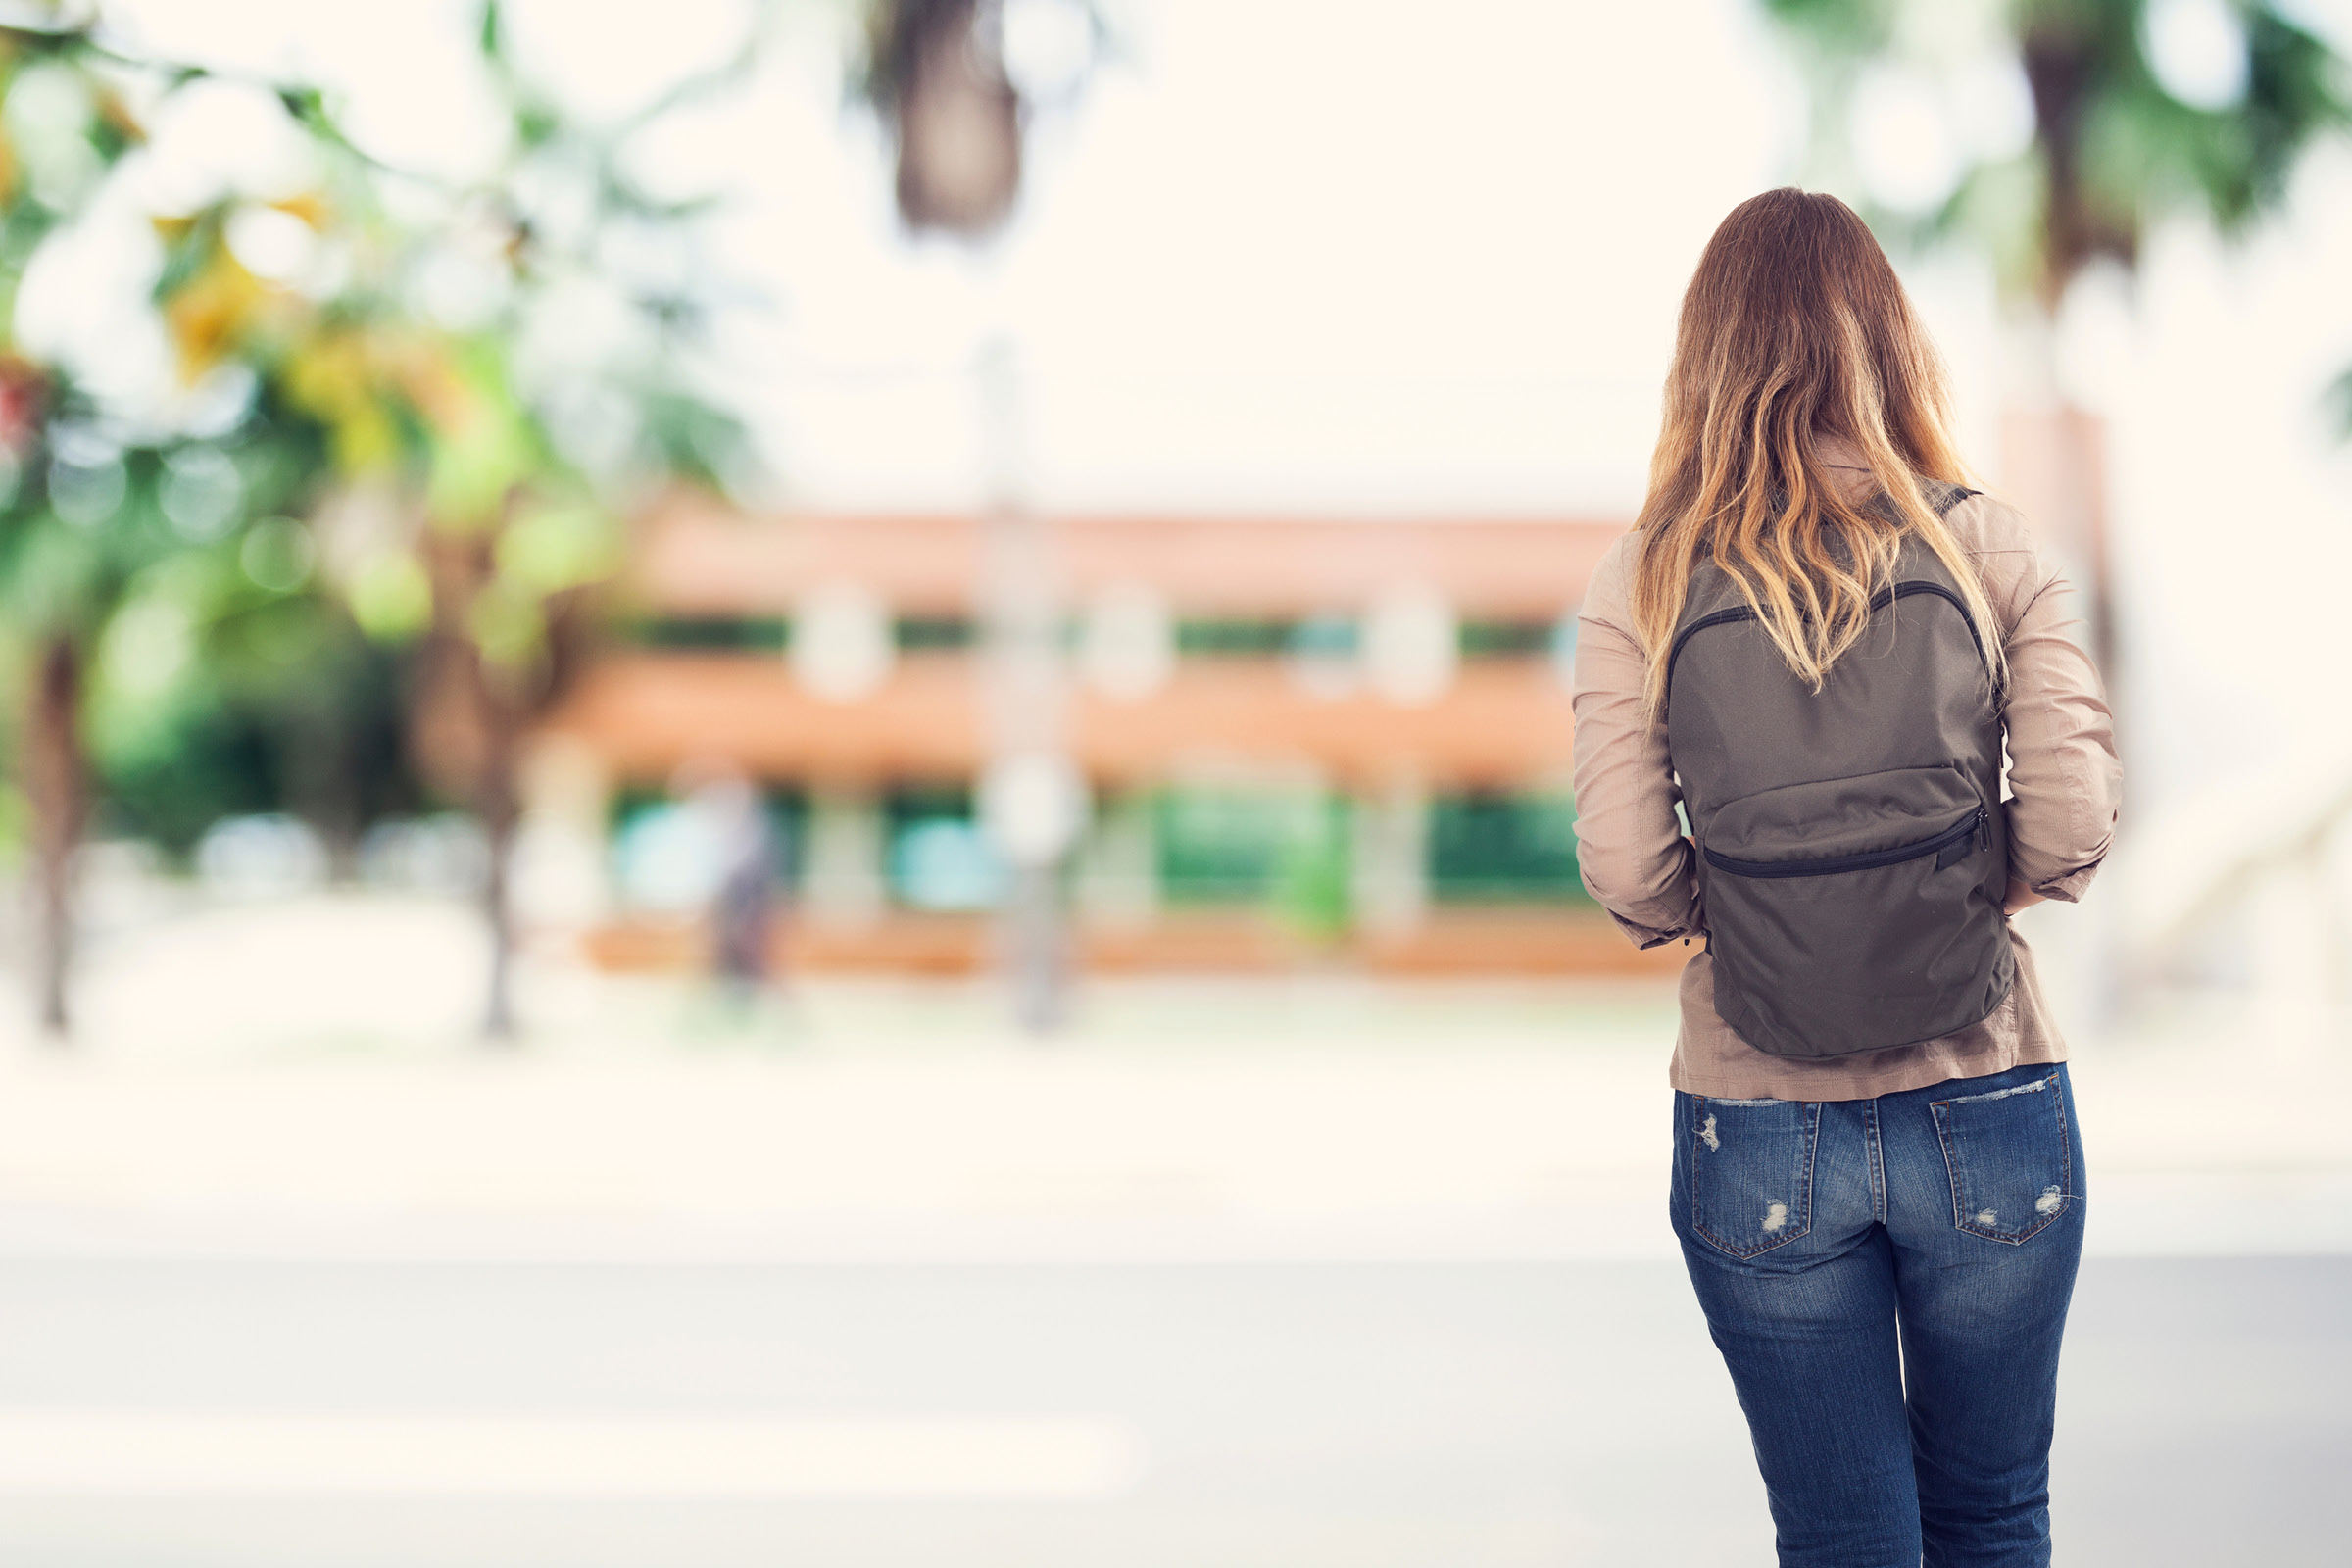 A woman with a backpack on walking towards a university.